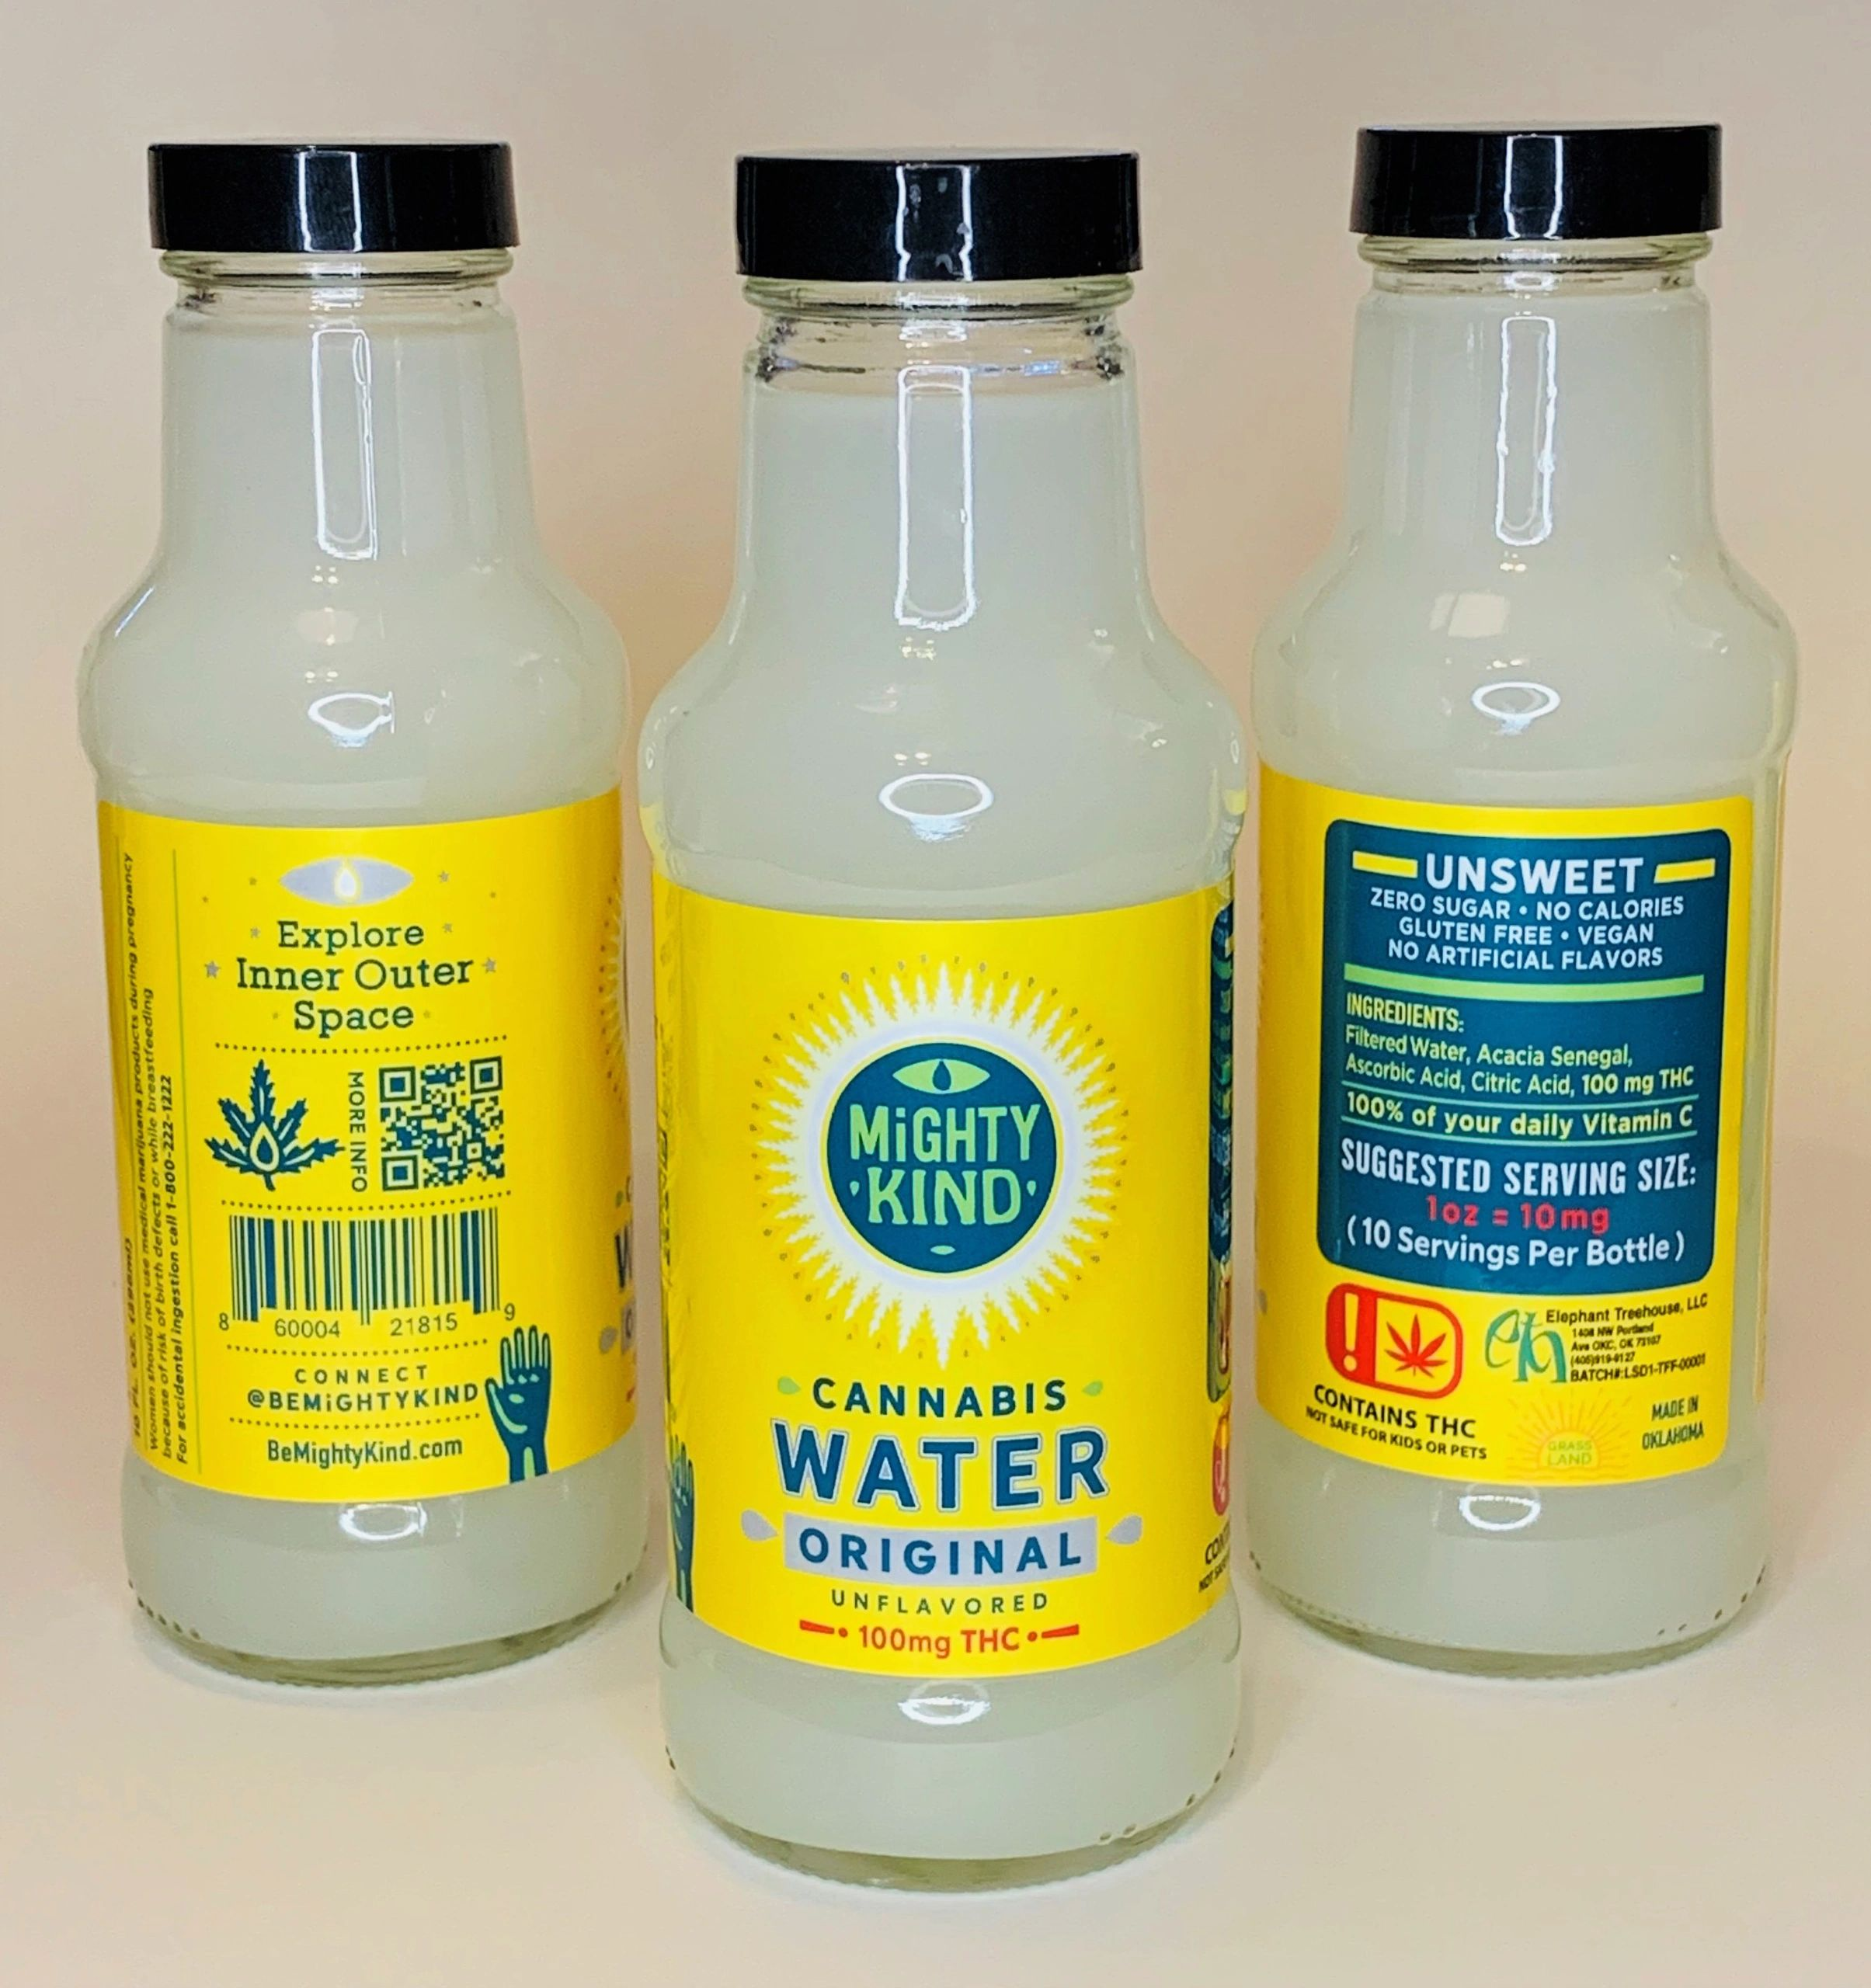 Mighty Kind Original C#OriginalCannabis Water #OGcannabiswaternnabis Water-No Sugar-No Flavor-No Add